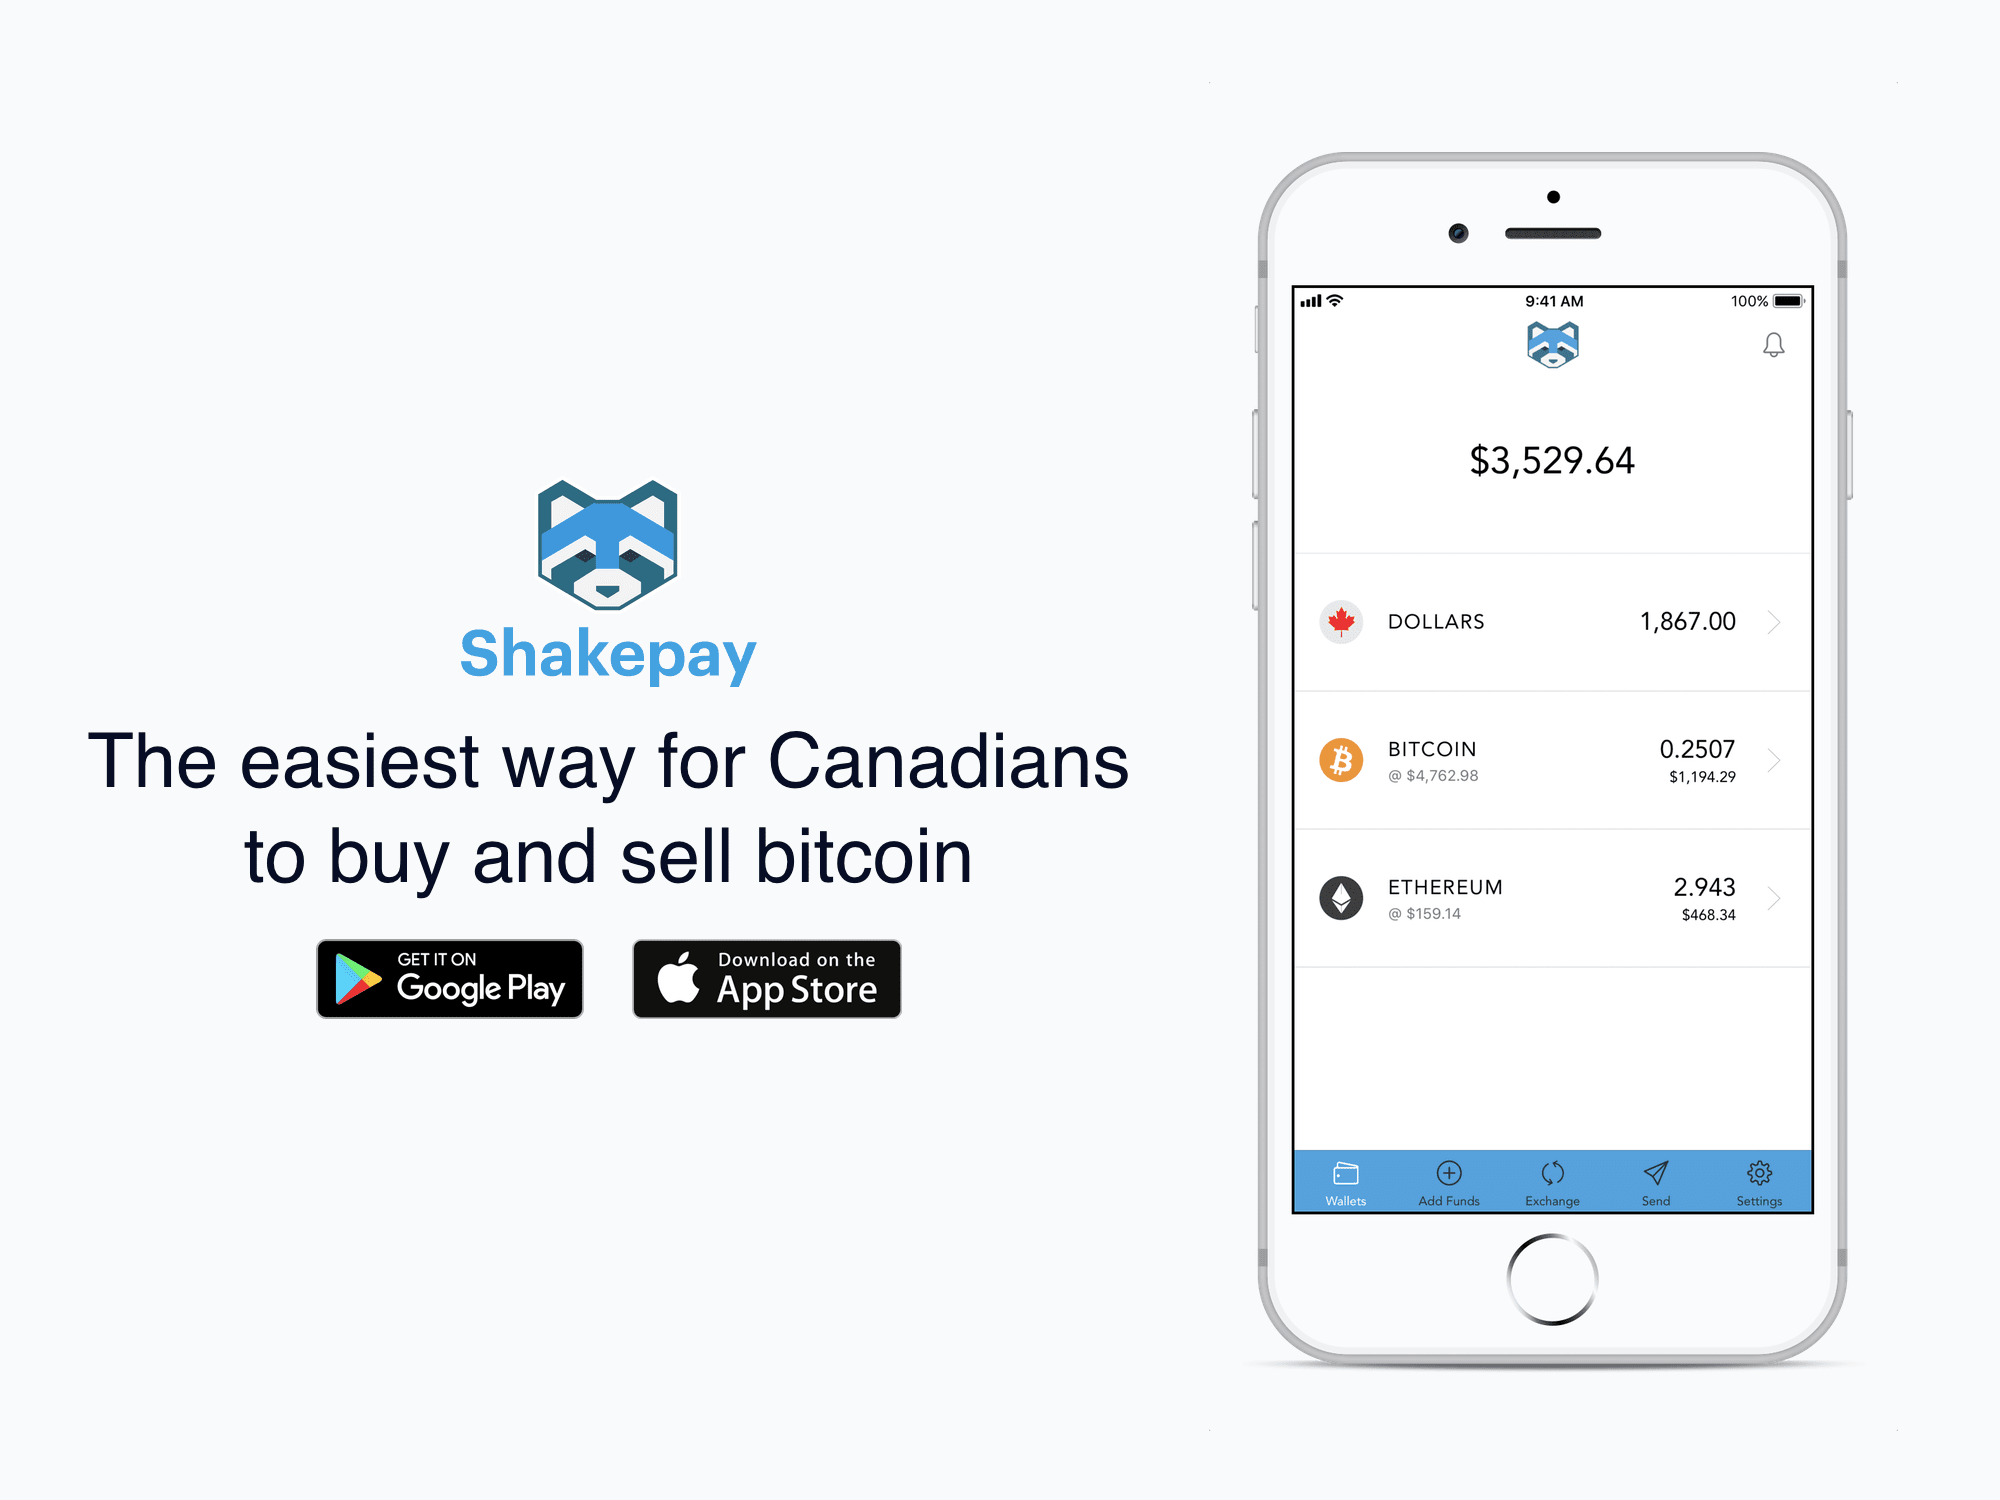 Get 10$ when you sign up to Shakepay and load 100$ into your account via Interac e-transfer.